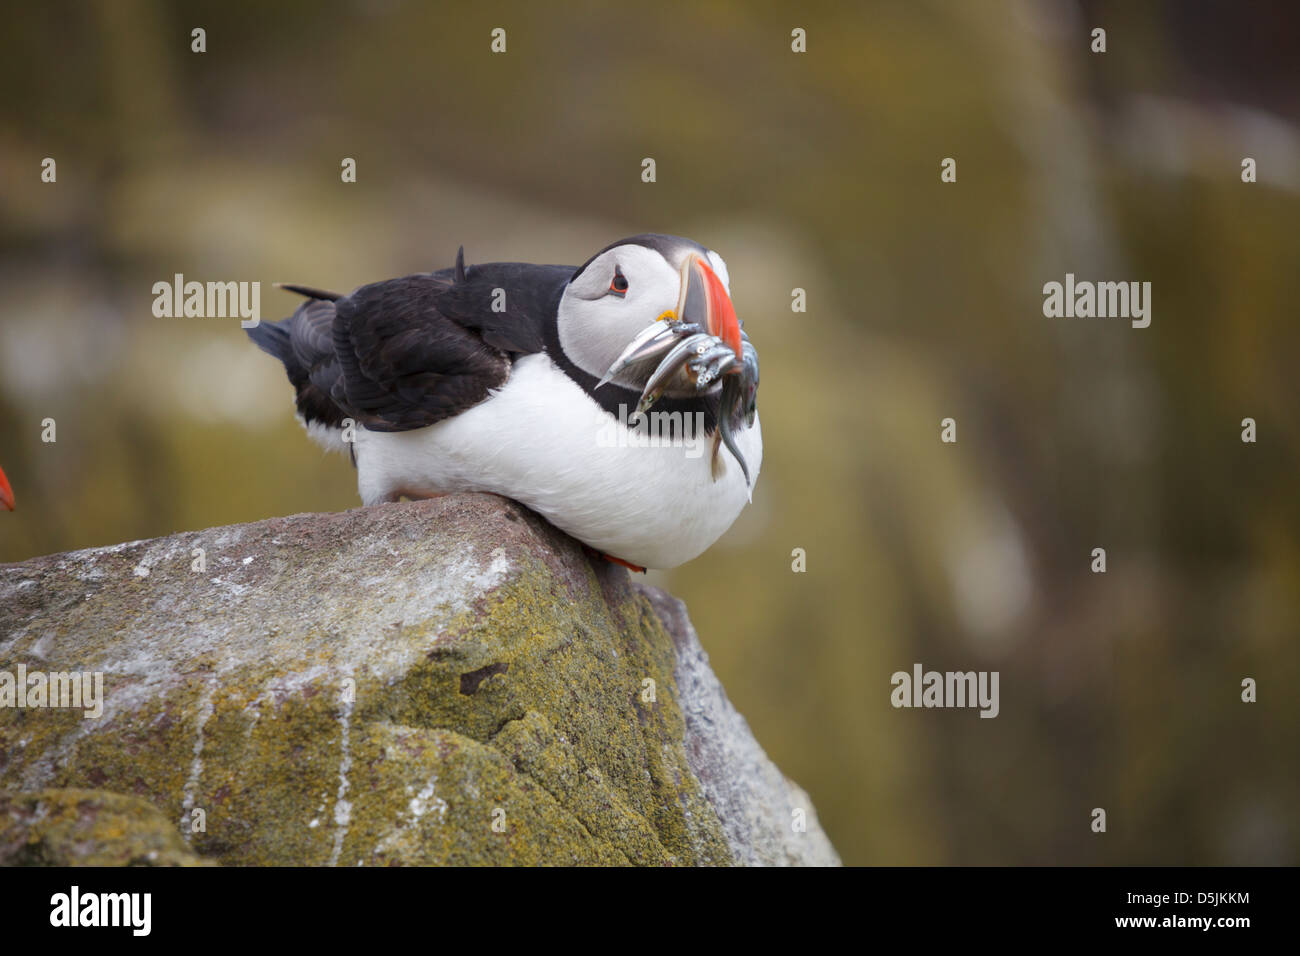 A puffin sitting with Sand Eels in its beak.  Captured on Inner Farne, part of the Farne Islands in Northumberland. Stock Photo